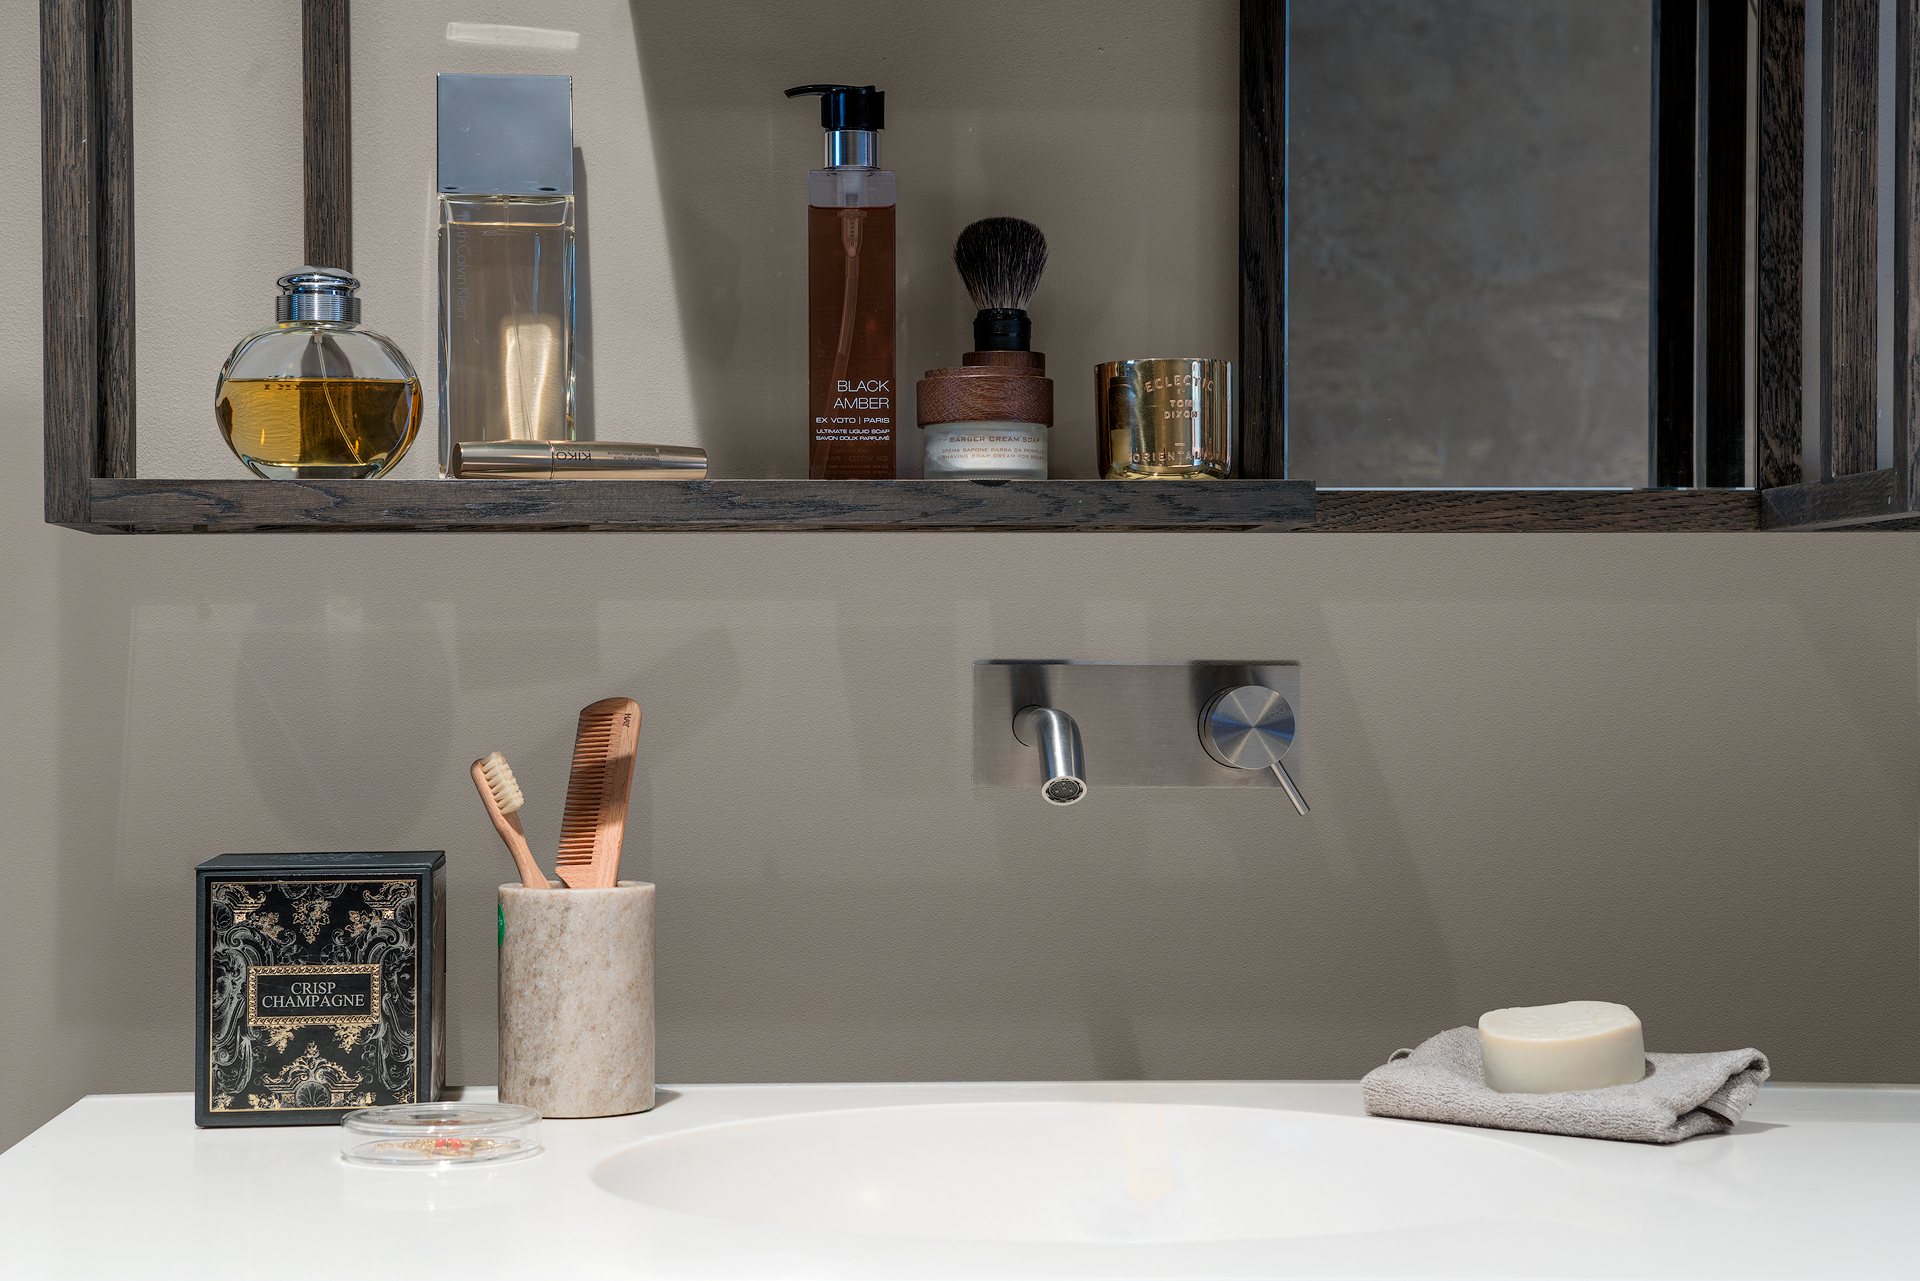 Bathroom with a medicine cabinet that suits with its interiors